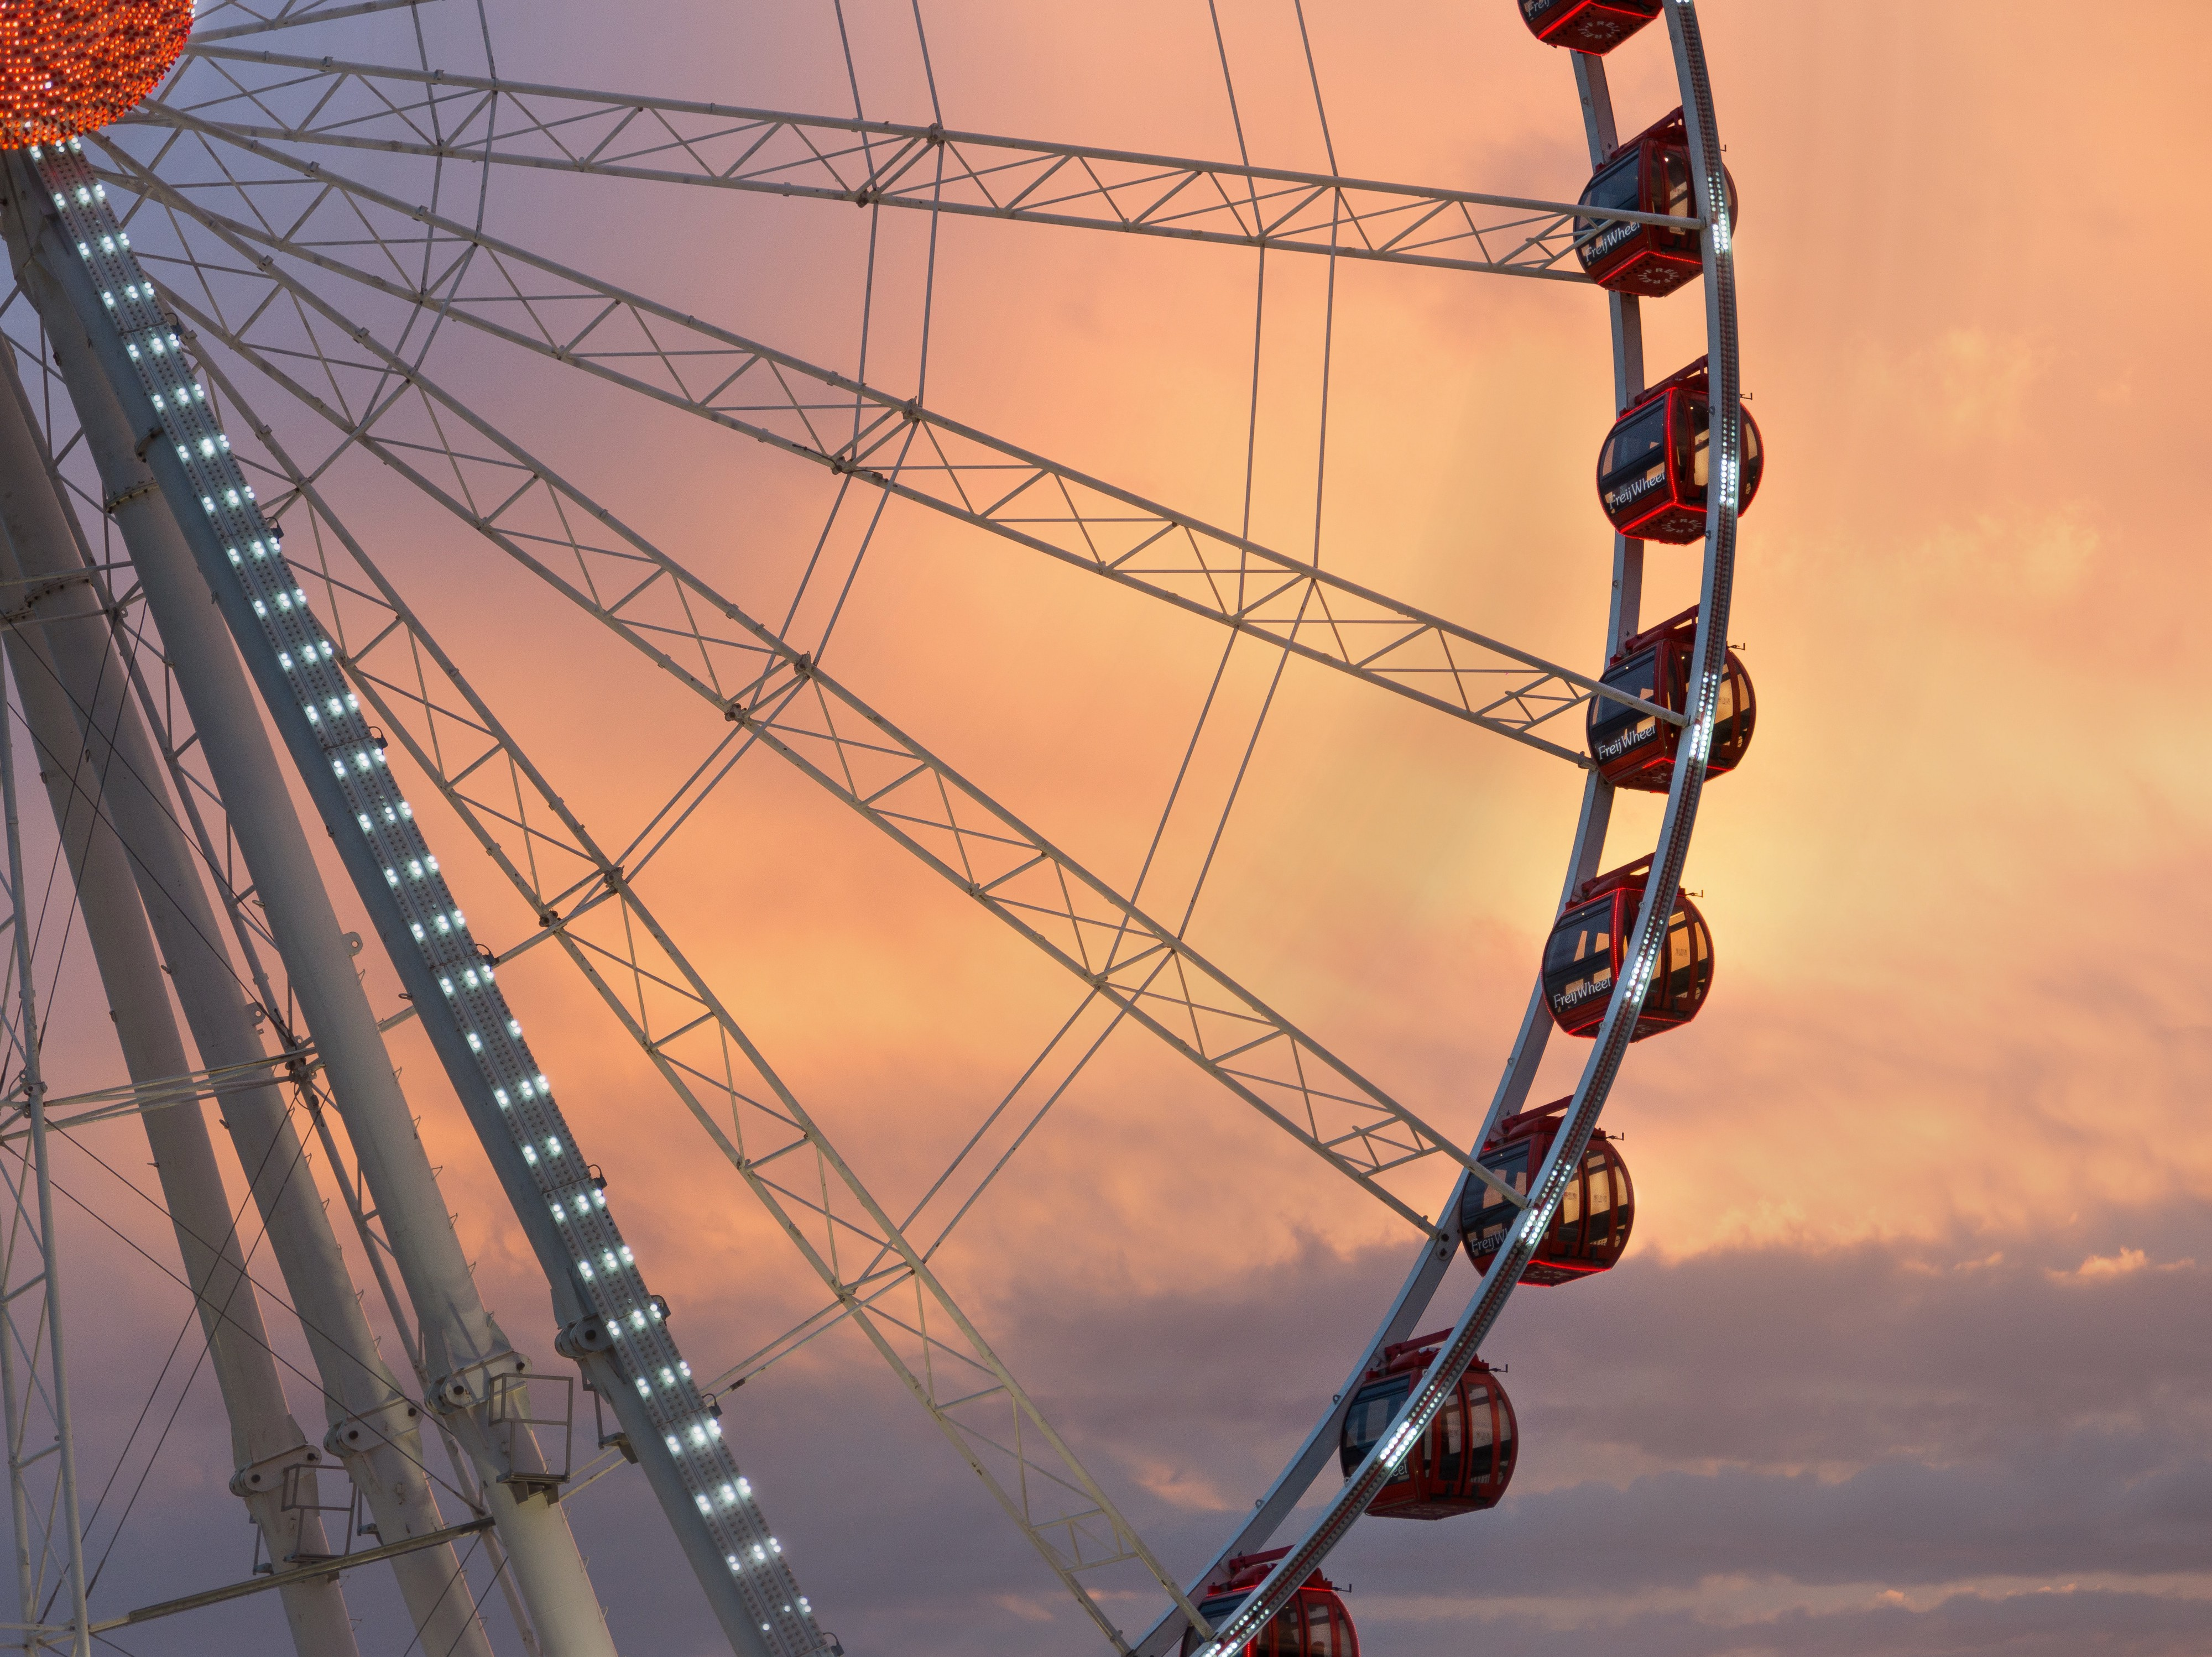 A ferris wheel is an exciting and romantic place to have public sex